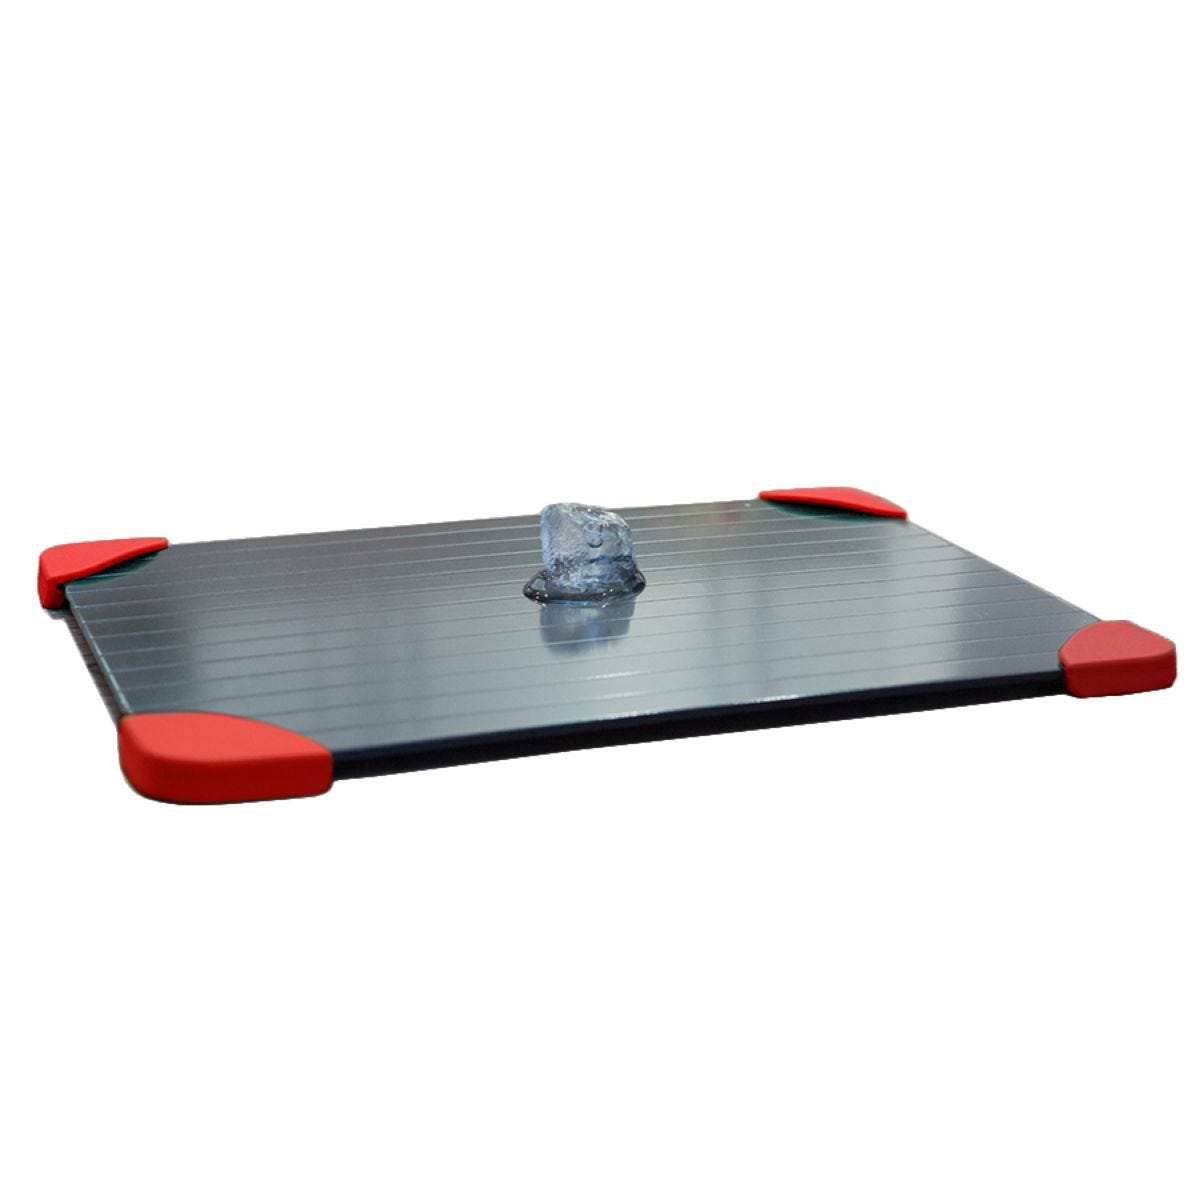 Miracle ThawBoard Food Defrosting Tray